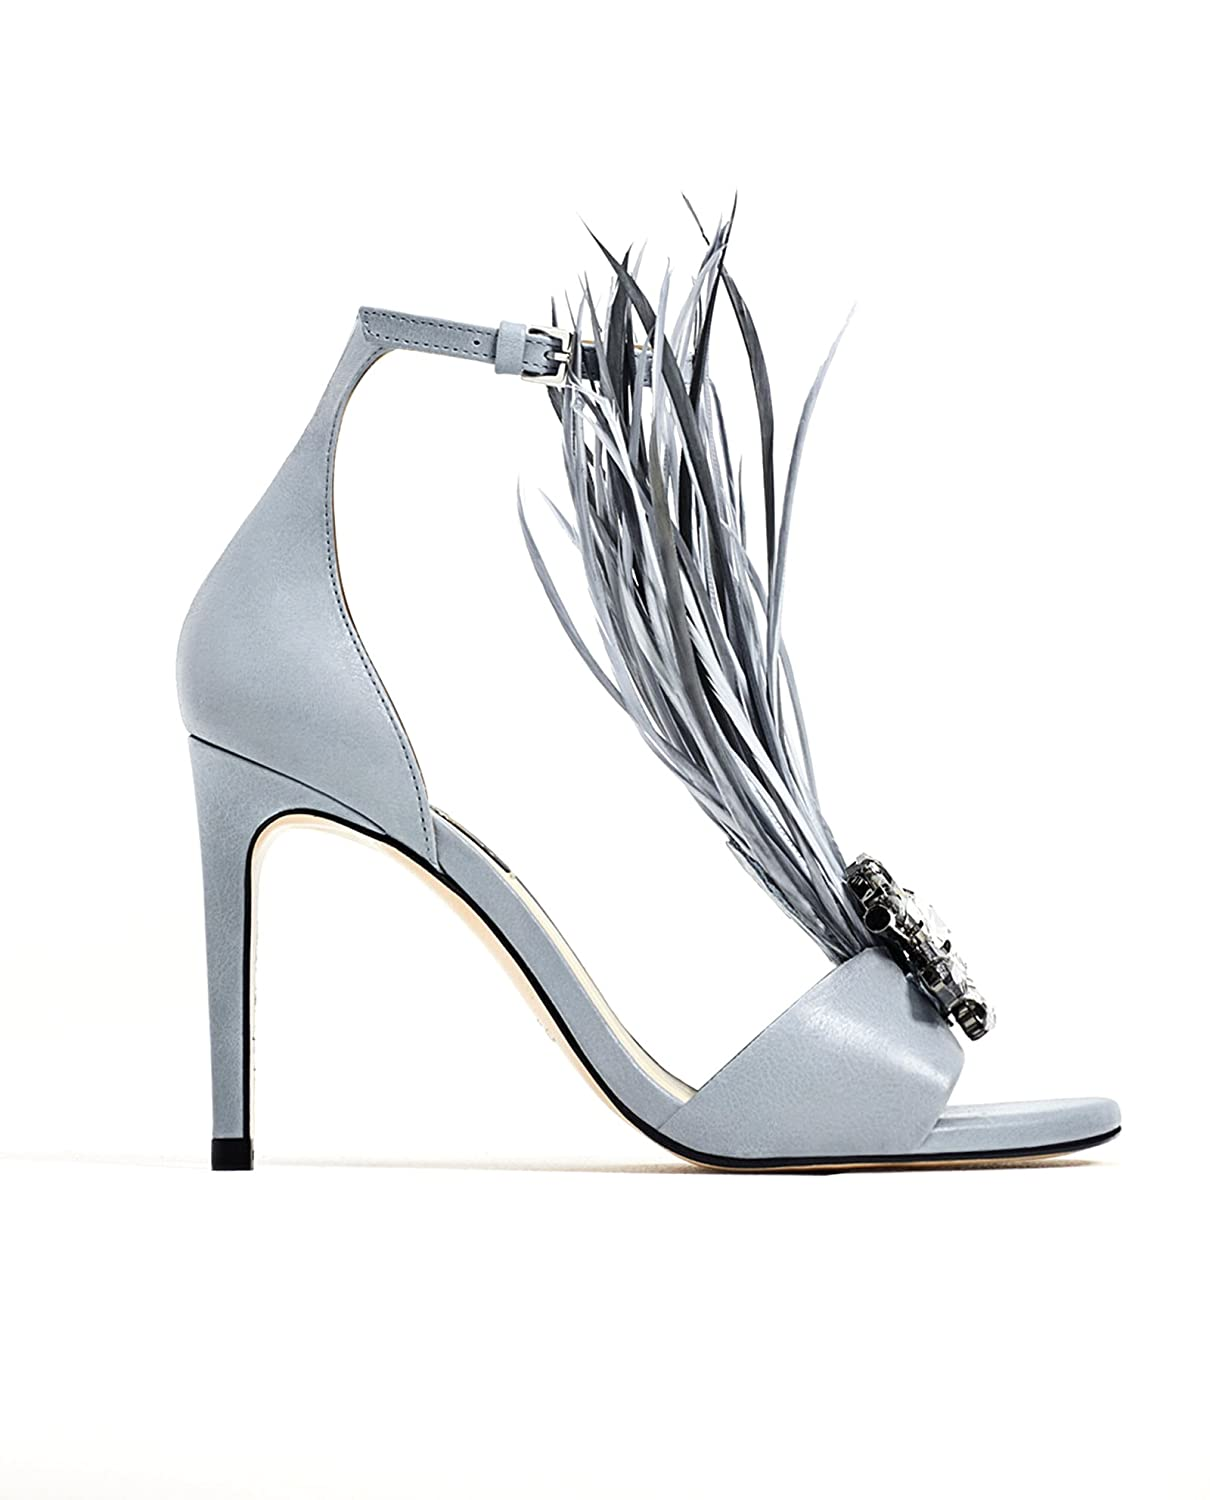 746e21c0dfb Zara Women High heel leather sandals with feathers 2680 201 (38 EU ...